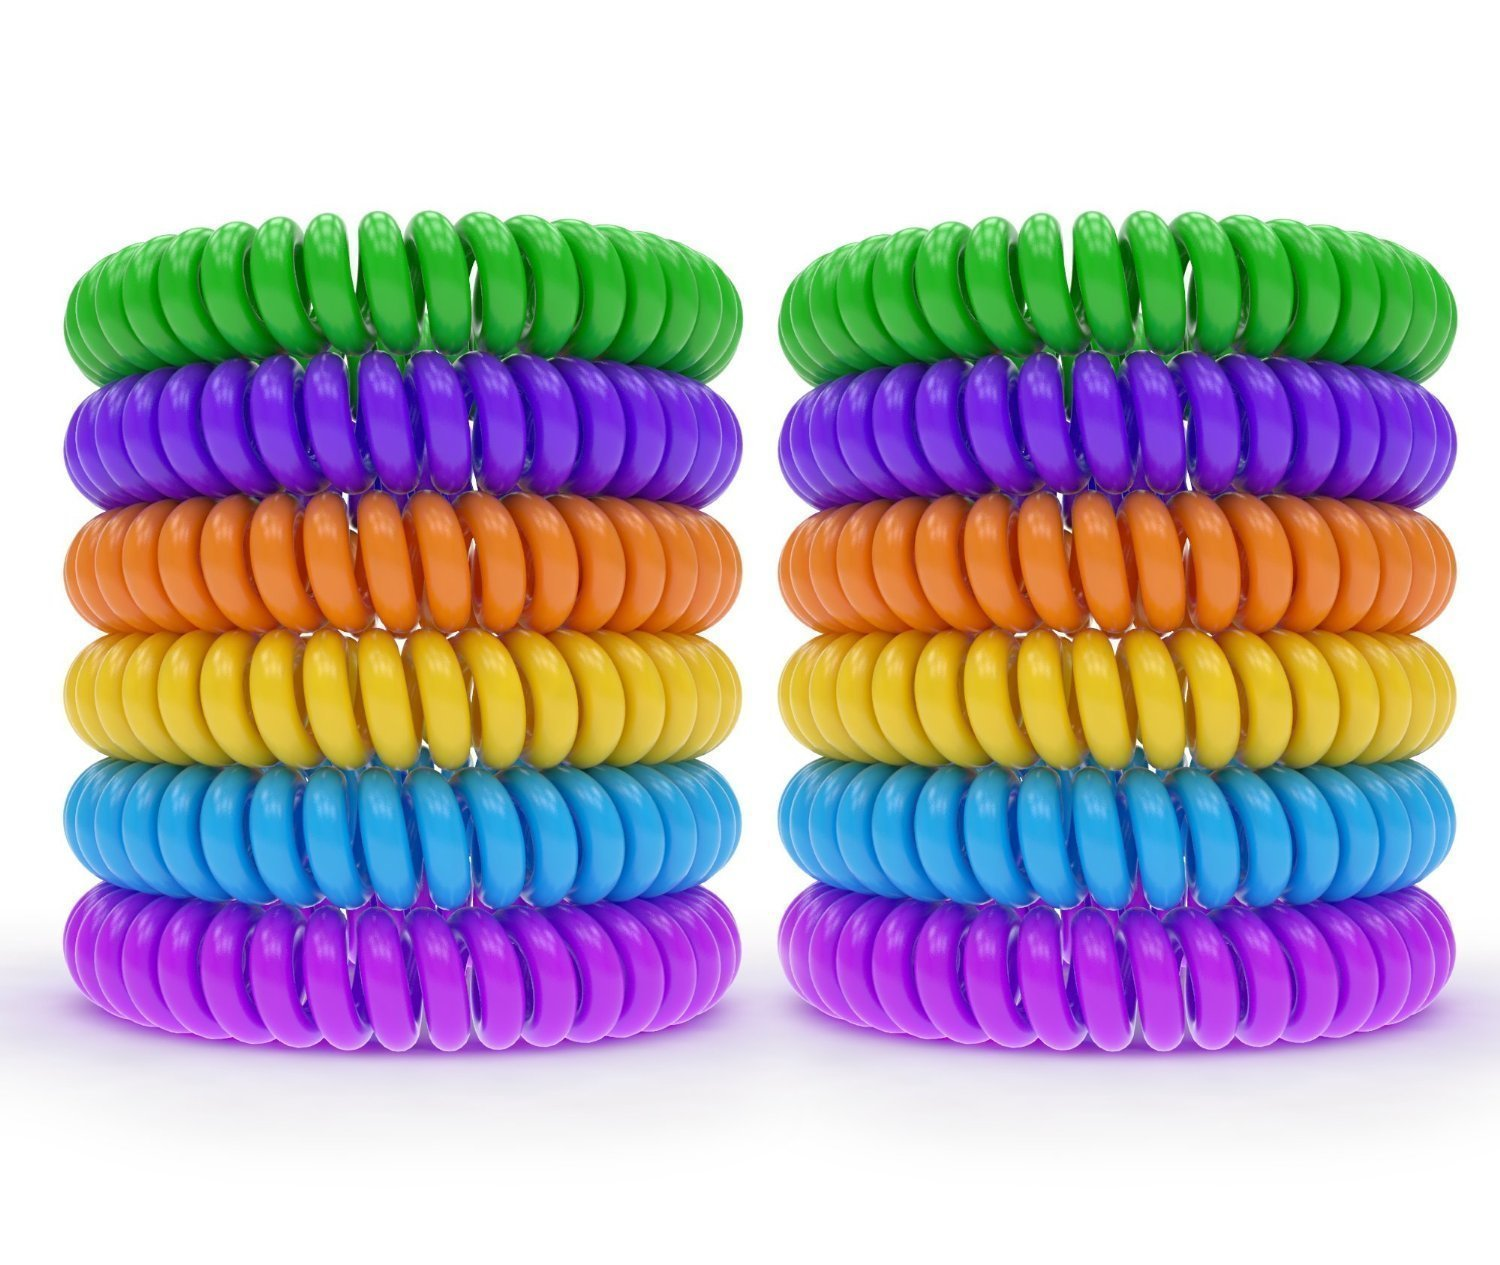 12 Pack Mosquito Repellent Bracelet Band - [320Hrs] of Premium Pest Control Insect Bug Repeller - Natural Indoor/Outdoor Insects - Best Products with NO Spray for Men, Women, Kids, Children by Zekpro (Image #3)